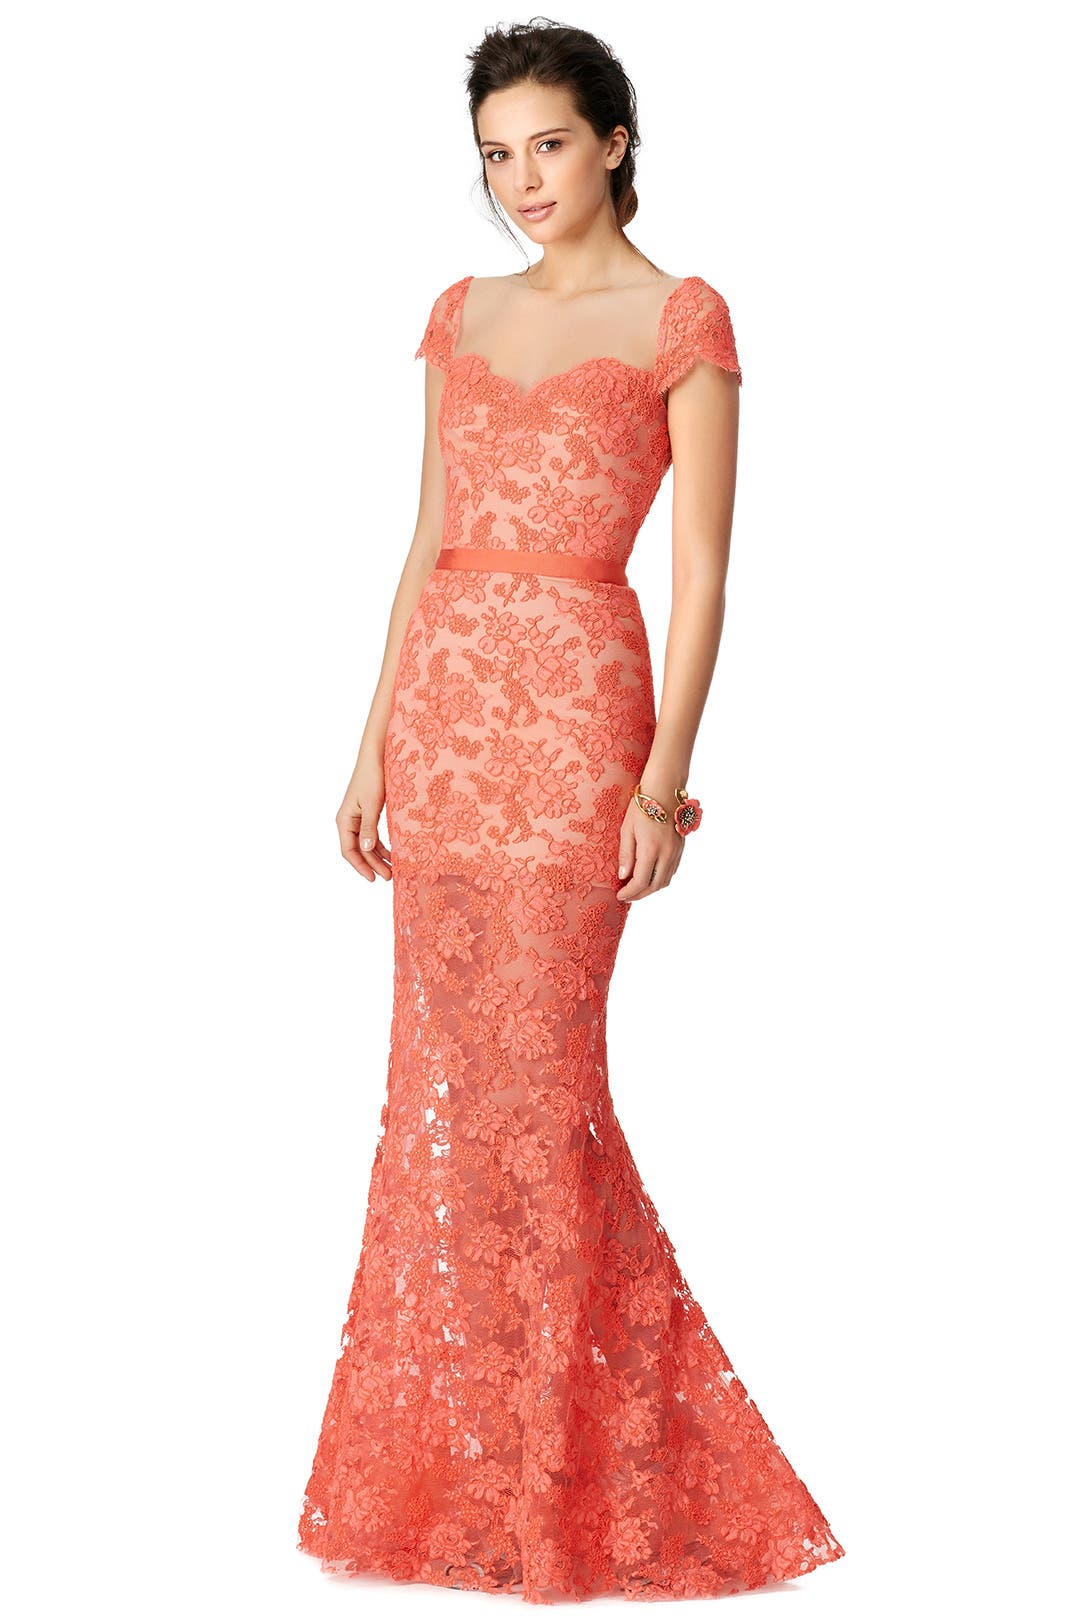 Helenium Gown by Reem Acra for $800   Rent the Runway